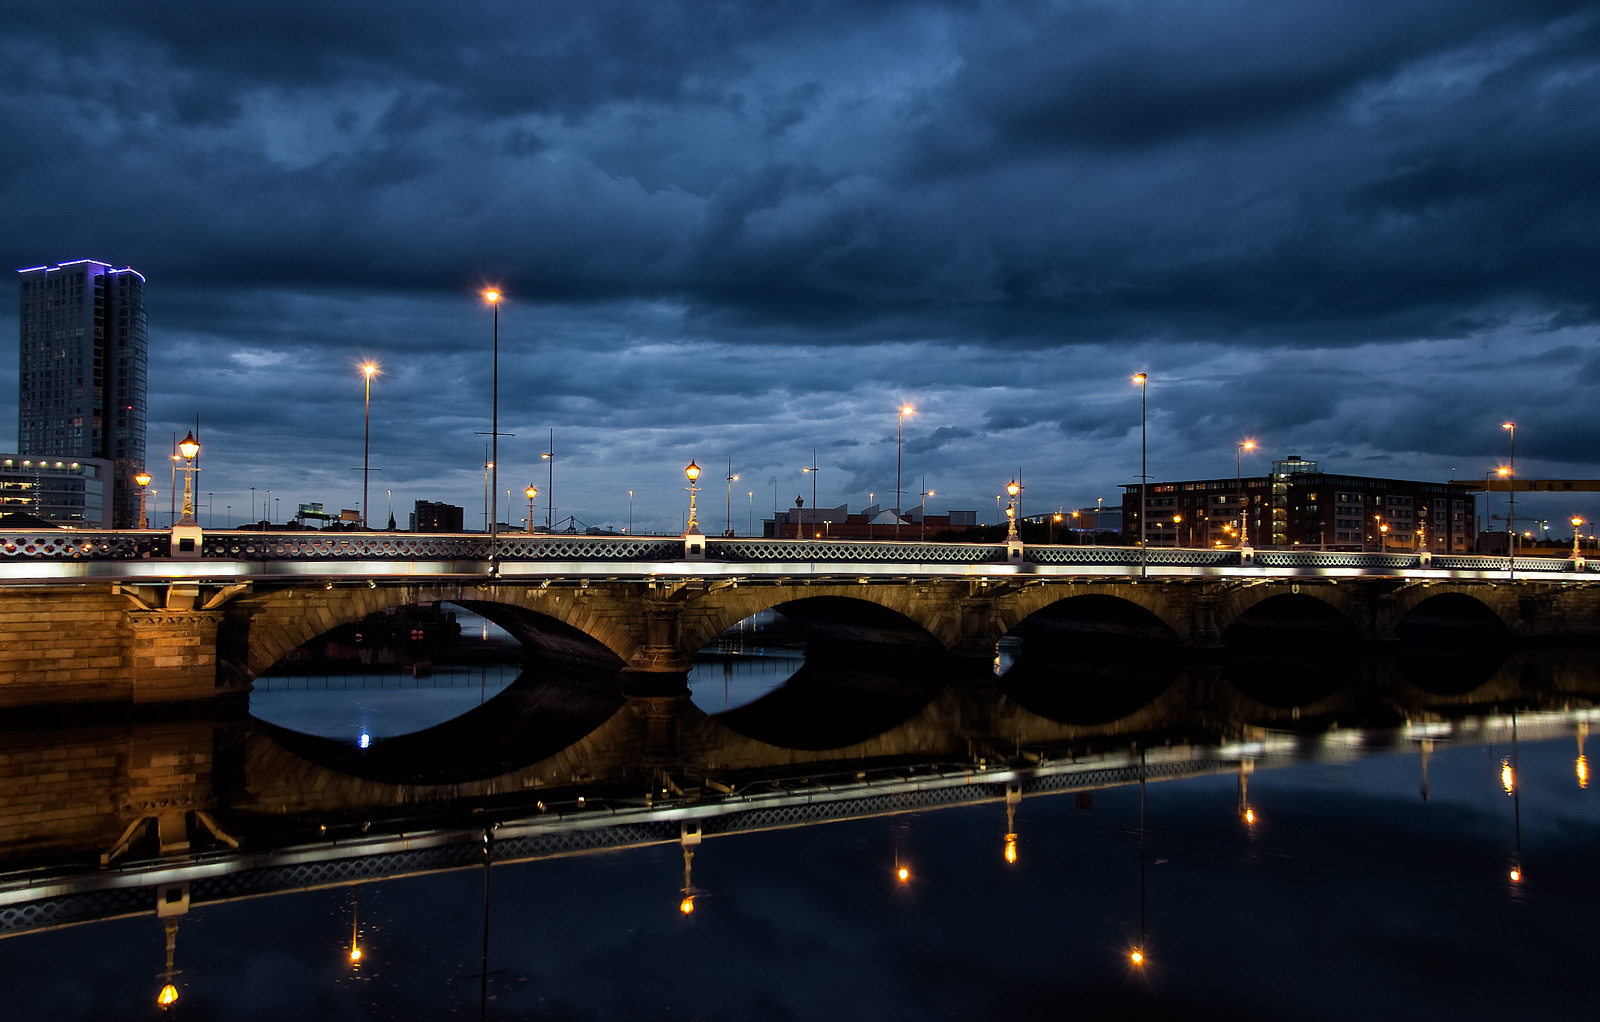 Reflecting on Queens Bridge by Geoff McGrath